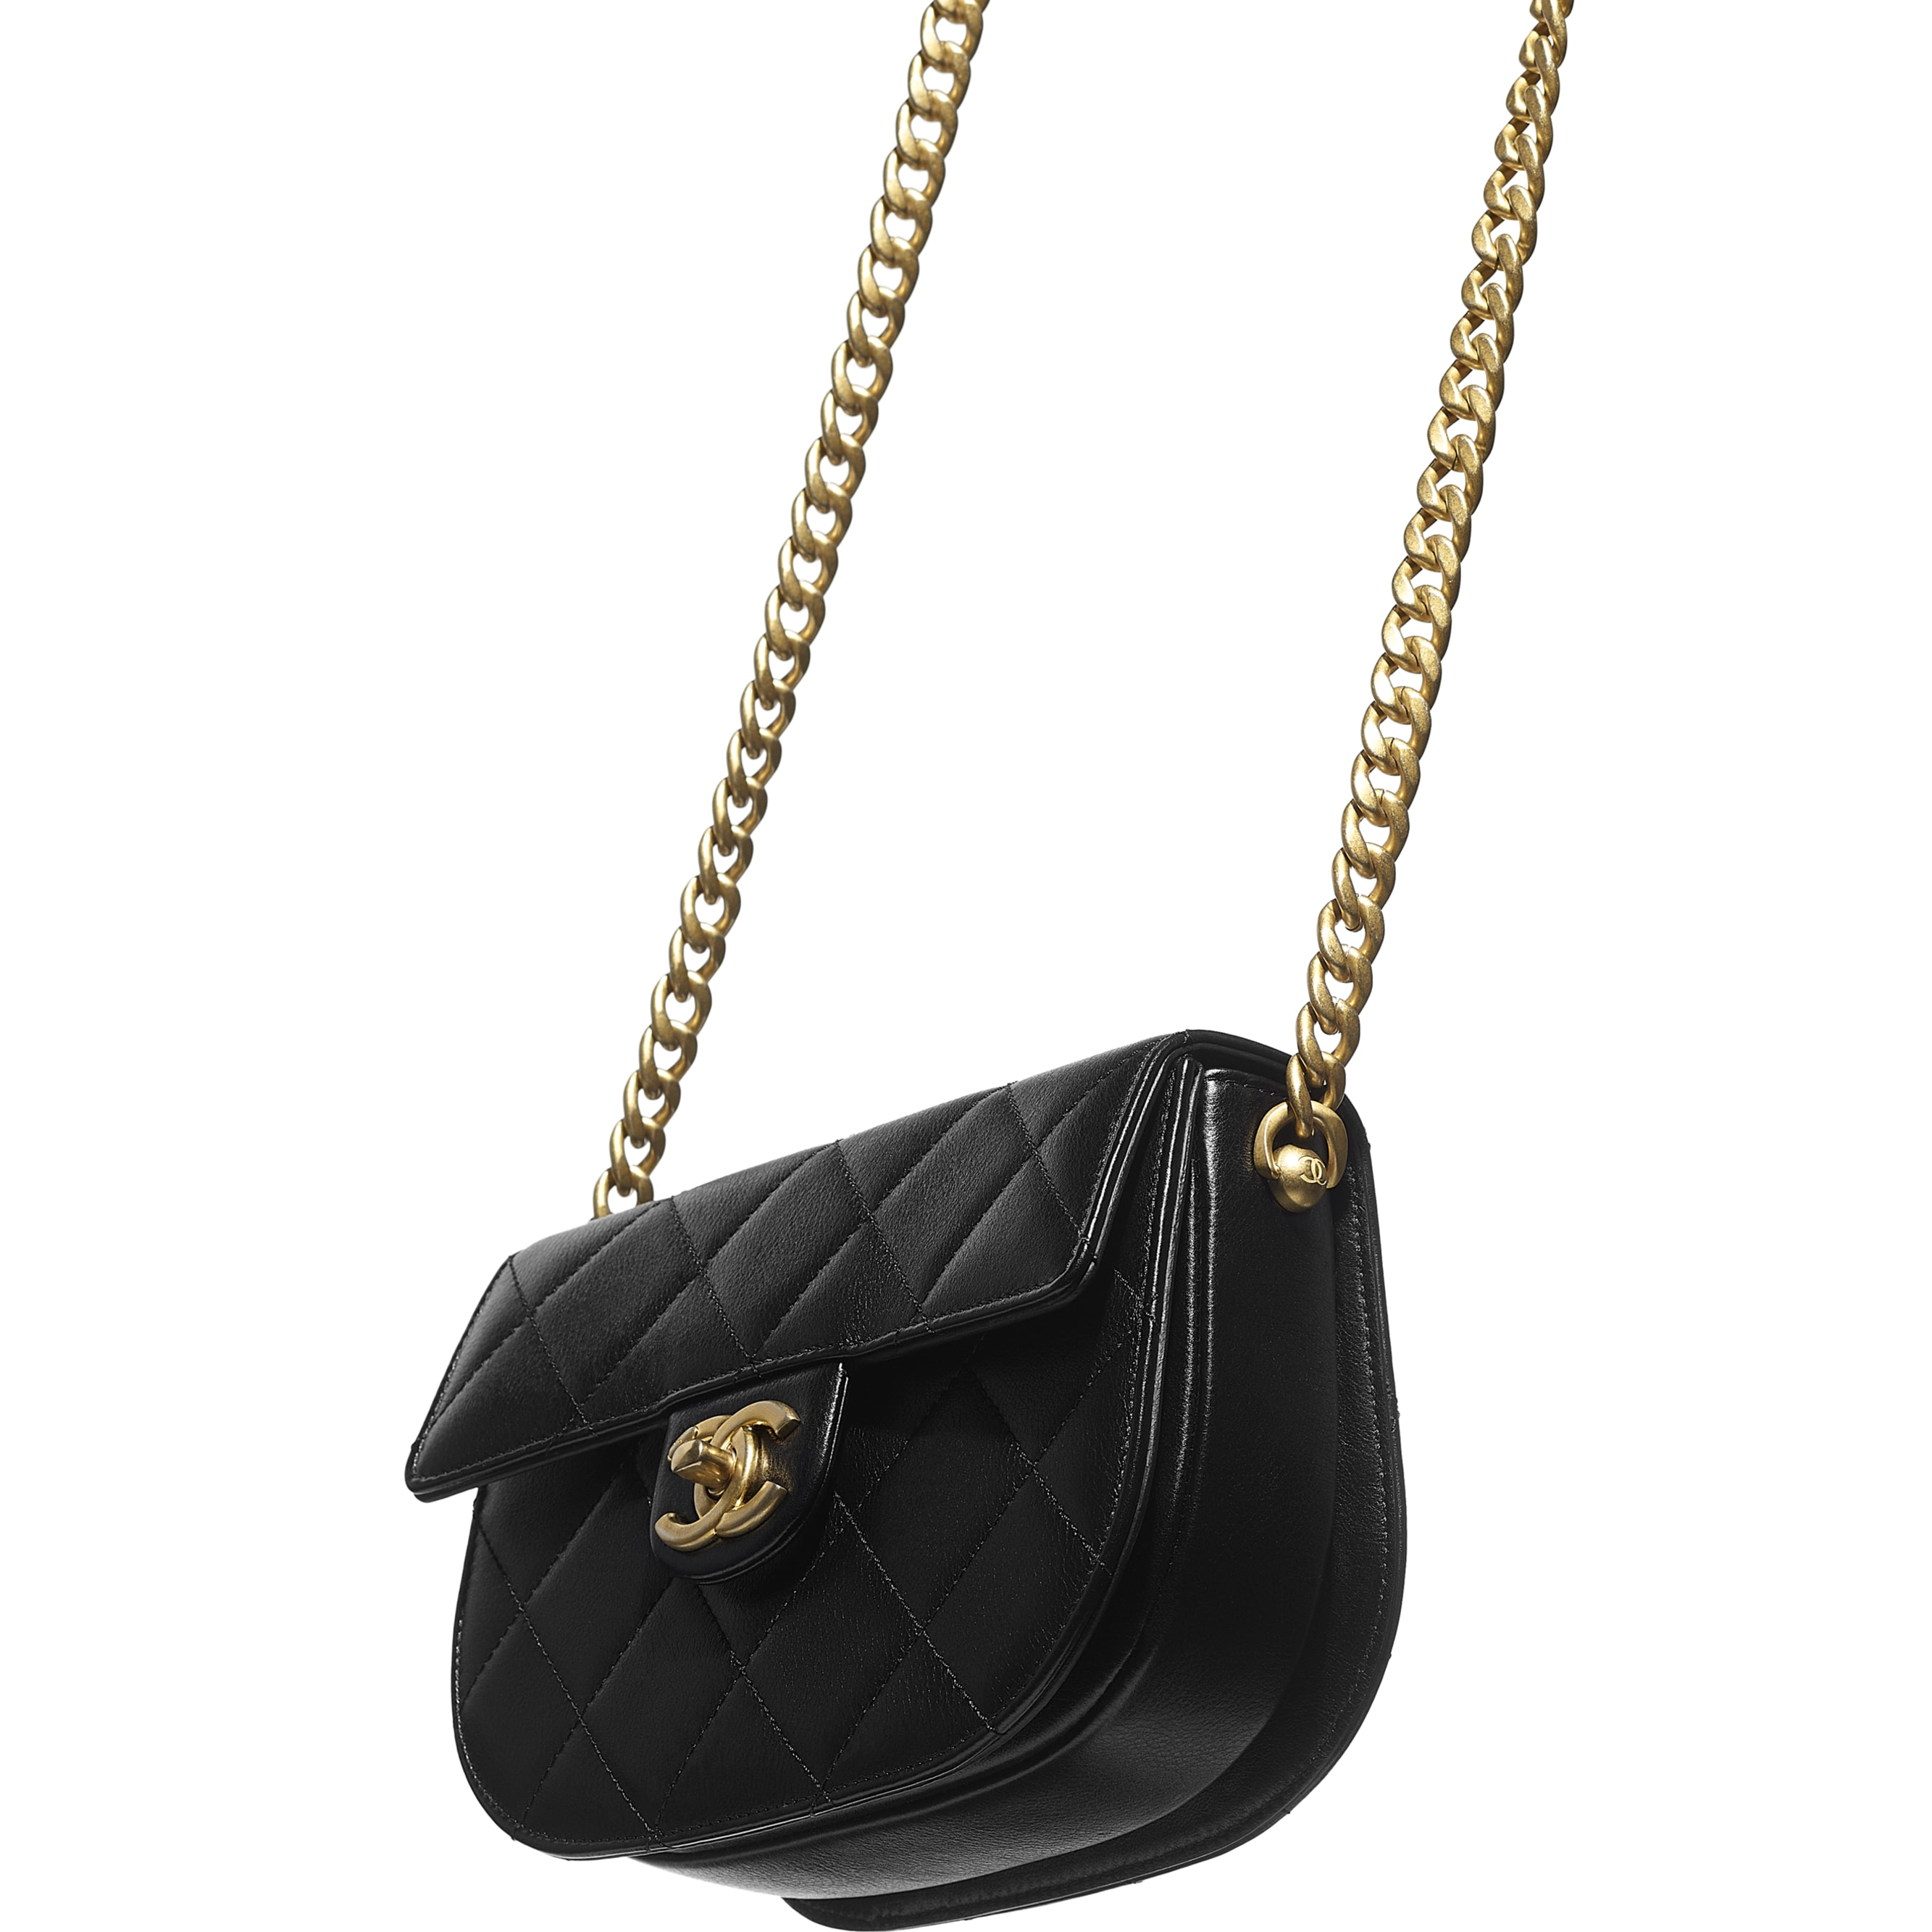 Mini Messenger Bag - Black - Calfskin & Gold-Tone Metal - CHANEL - Extra view - see standard sized version